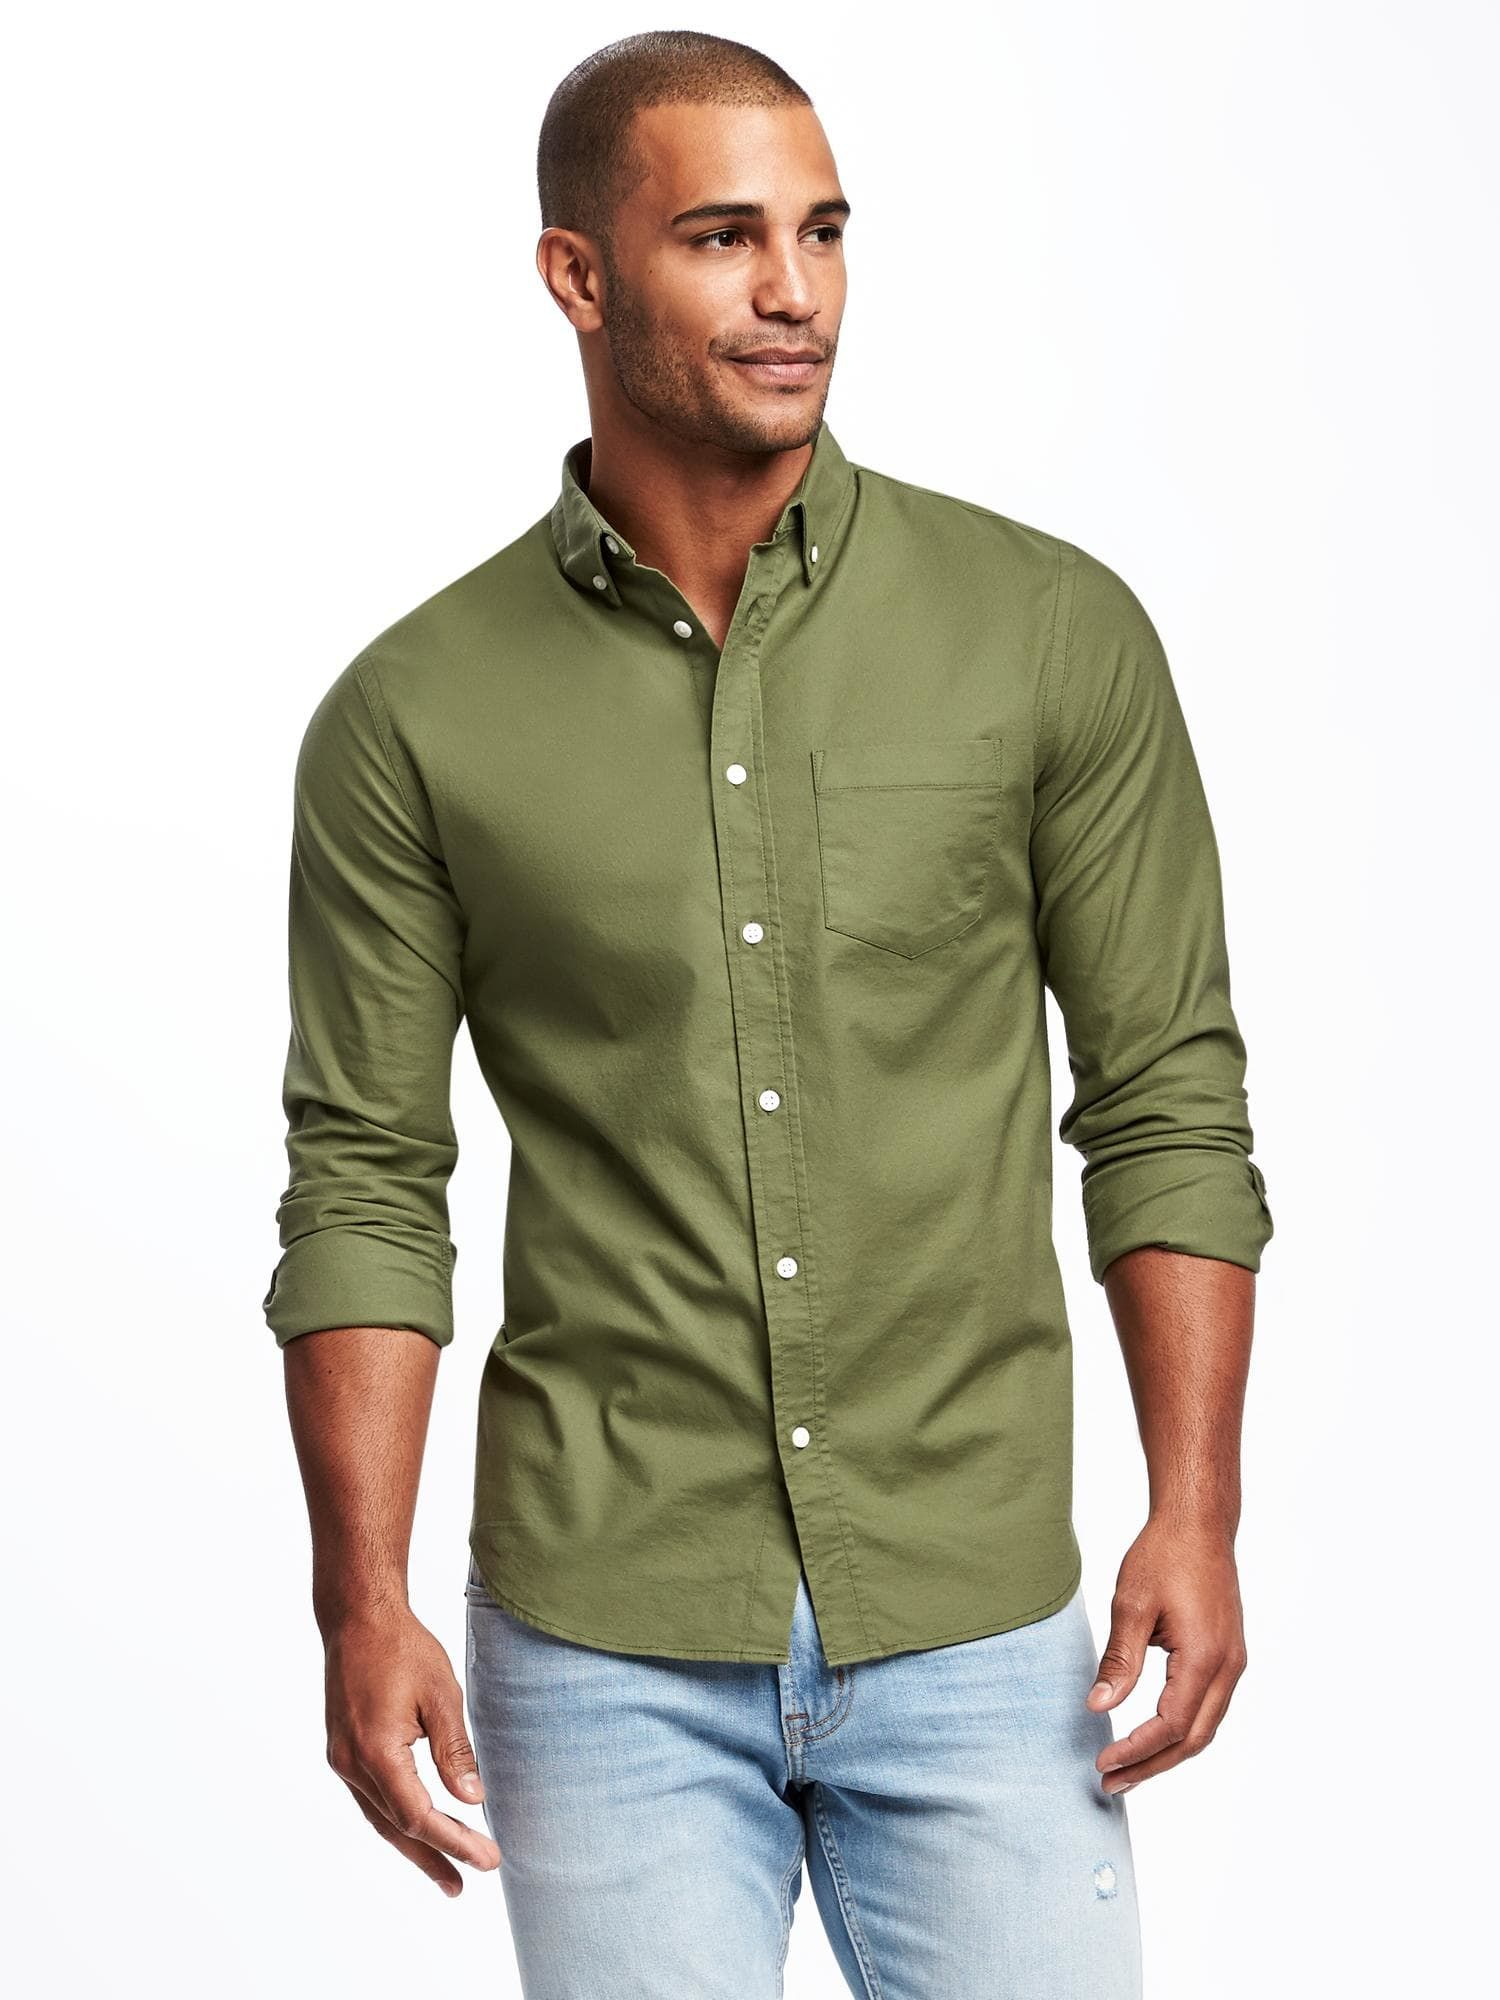 Slim Fit Built In Flex Everyday Oxford Shirt For Men Old Navy Mens Shirts Oxford Shirt Mexican Outfit